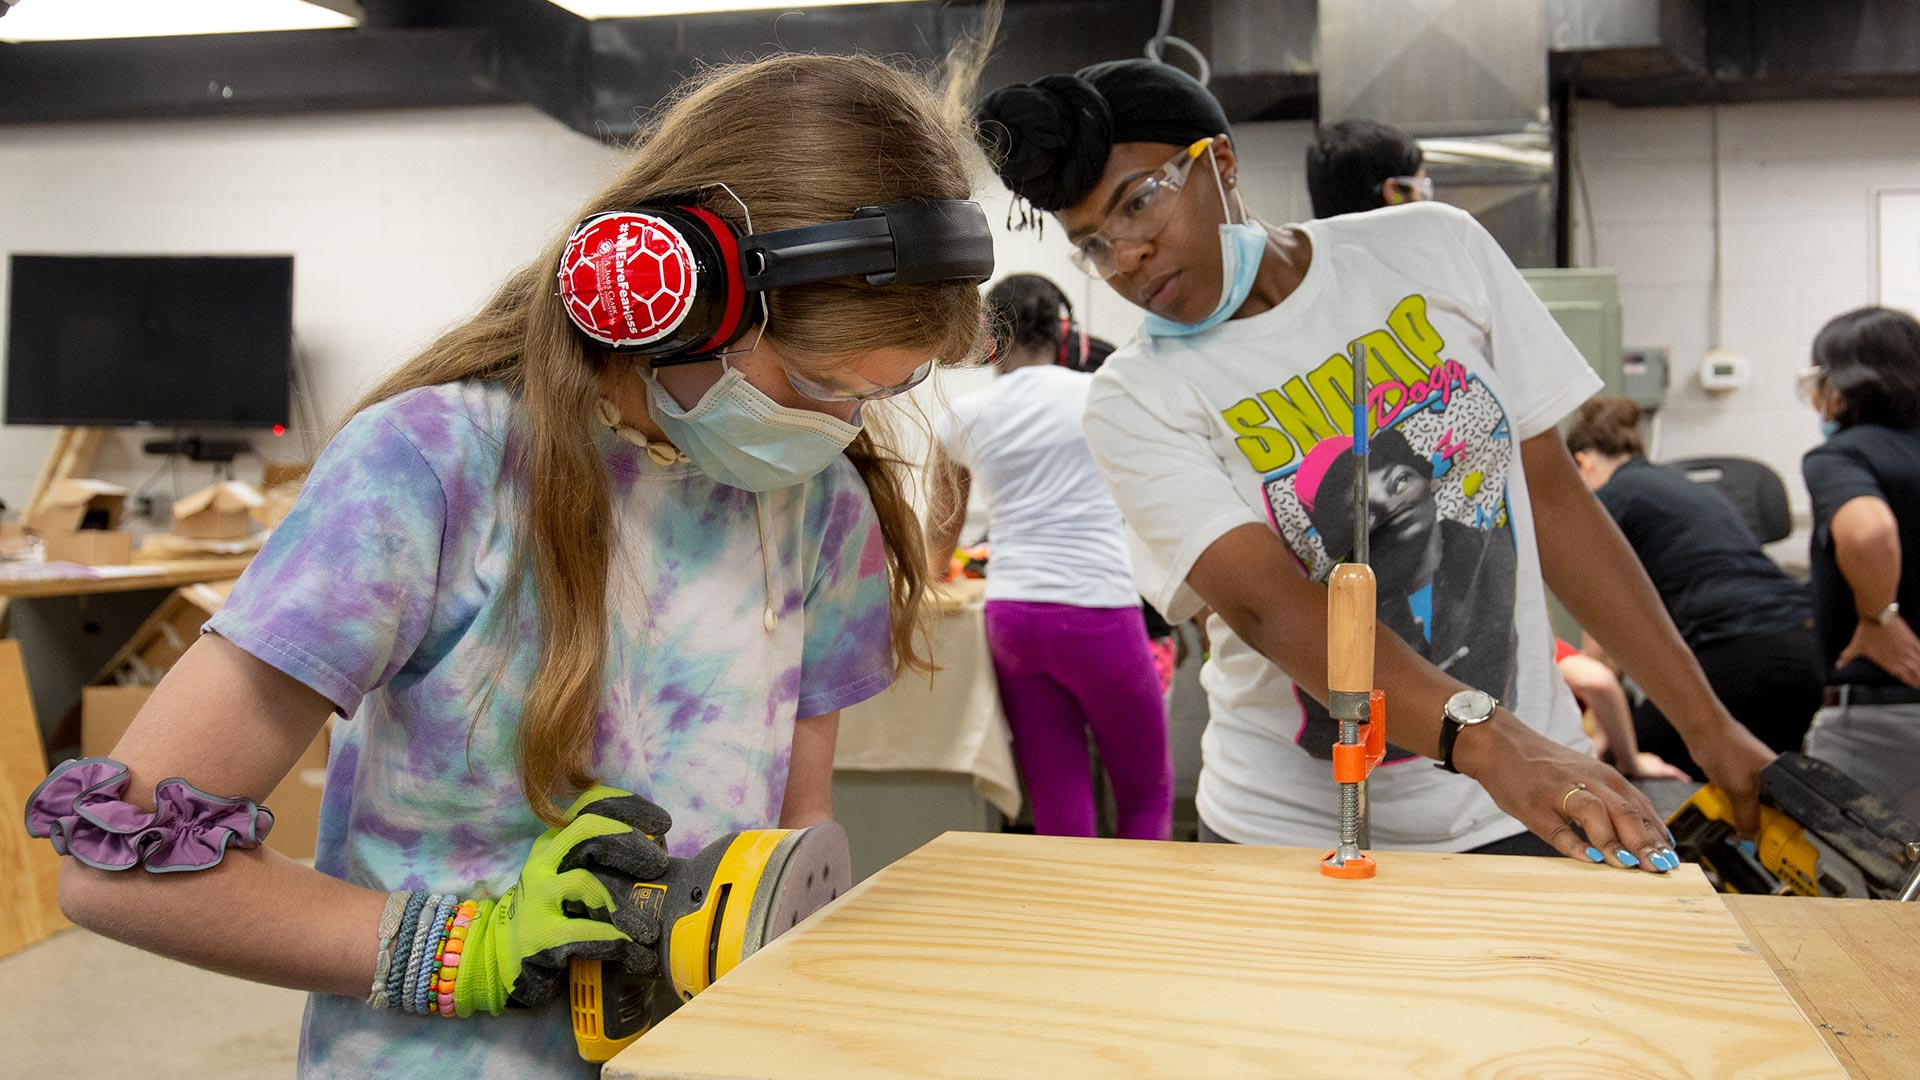 Counselor Brianna Williams (right), a student at the University of Maryland Eastern Shore, supervises Lydia Cashin, 12, of Bethesda, Md., as they build Free Little Libraries during the M-Power Tools summer day camp this week. (Photos by Stephanie S. Cordle)